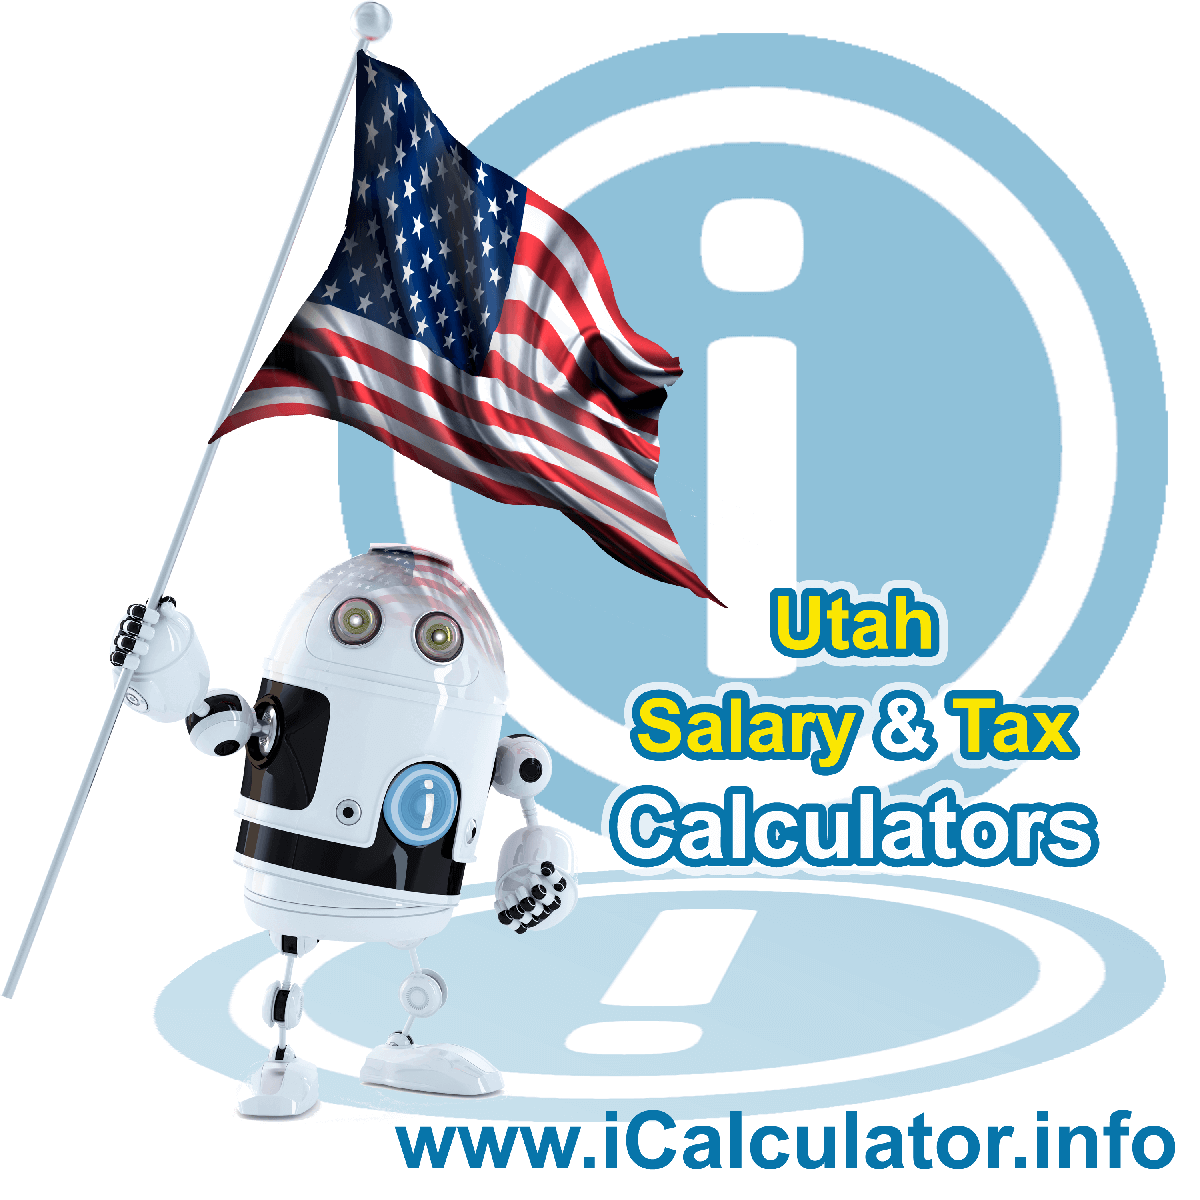 Utah Salary Calculator 2019 | iCalculator | The Utah Salary Calculator allows you to quickly calculate your salary after tax including Utah State Tax, Federal State Tax, Medicare Deductions, Social Security, Capital Gains and other income tax and salary deductions complete with supporting Utah state tax tables